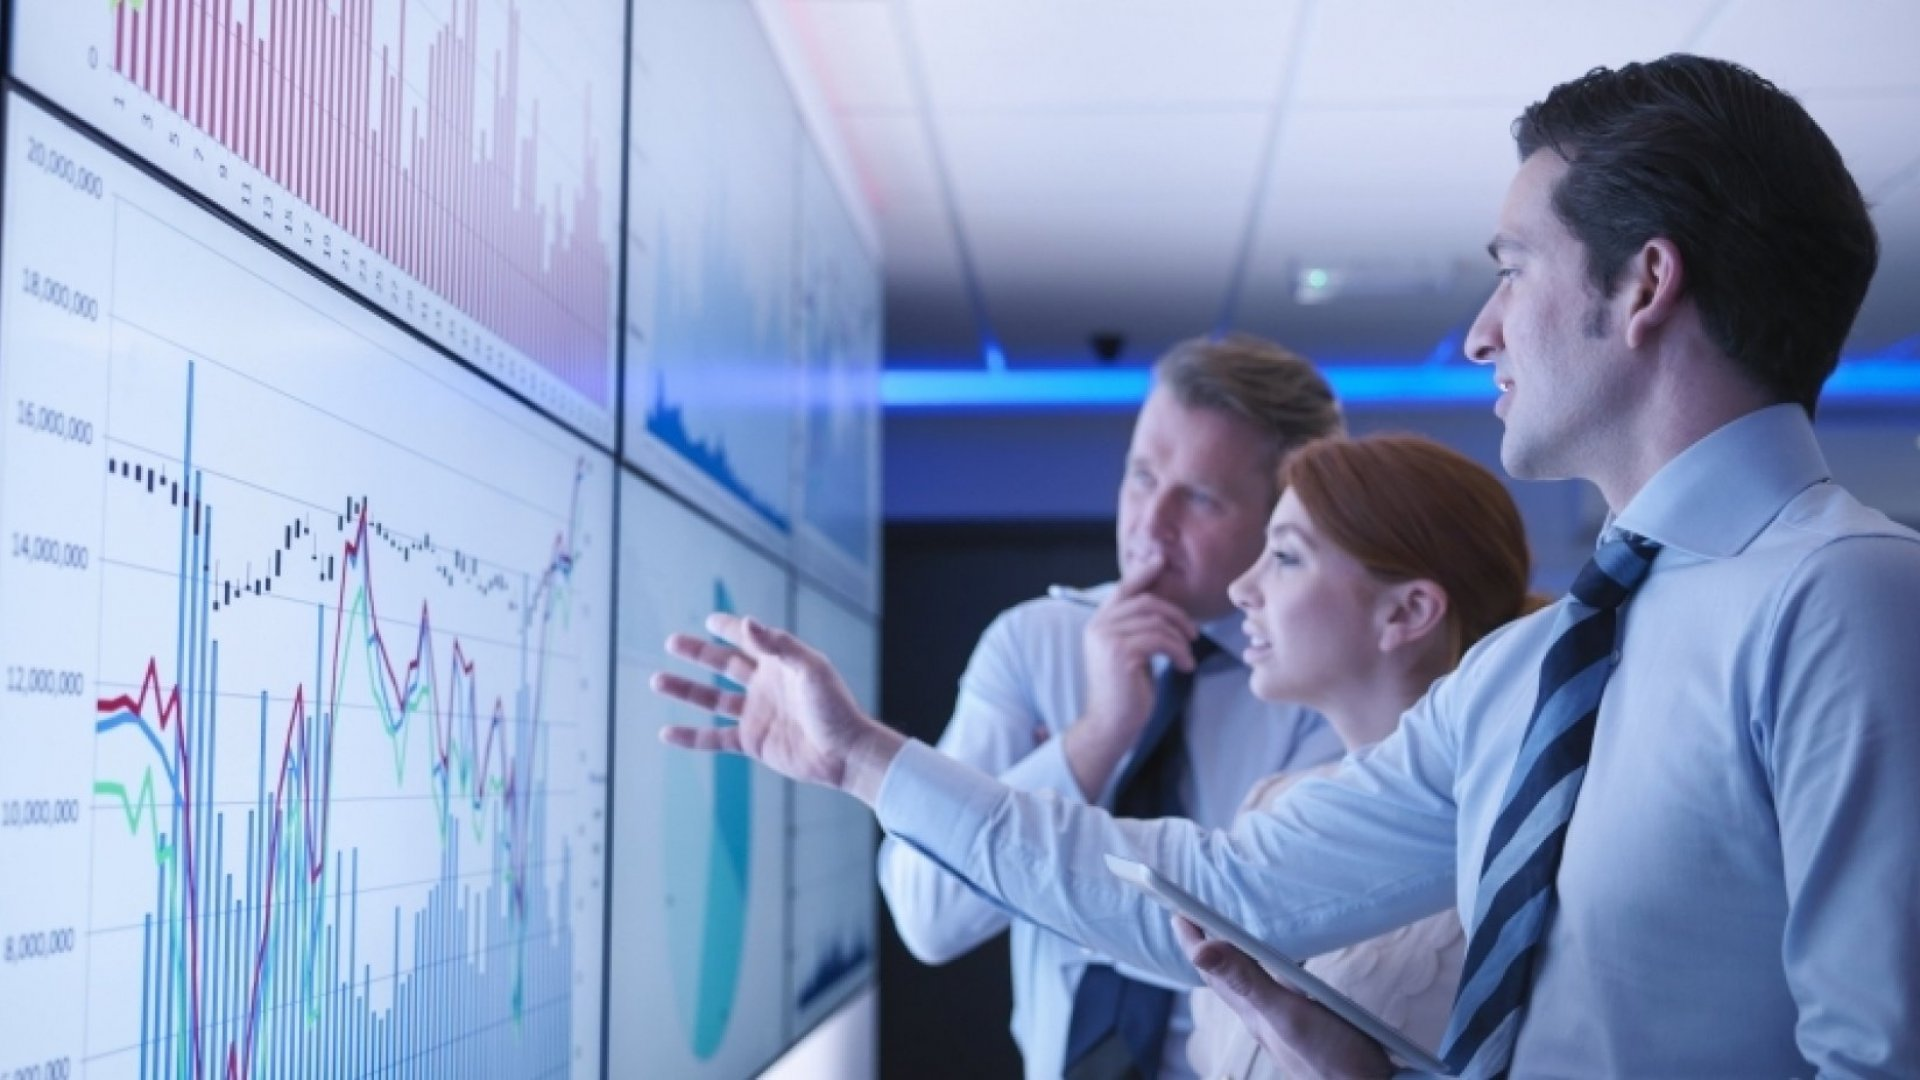 Turn Data Into Insight Into Action: Six Rules for Nailing Digital Analytics